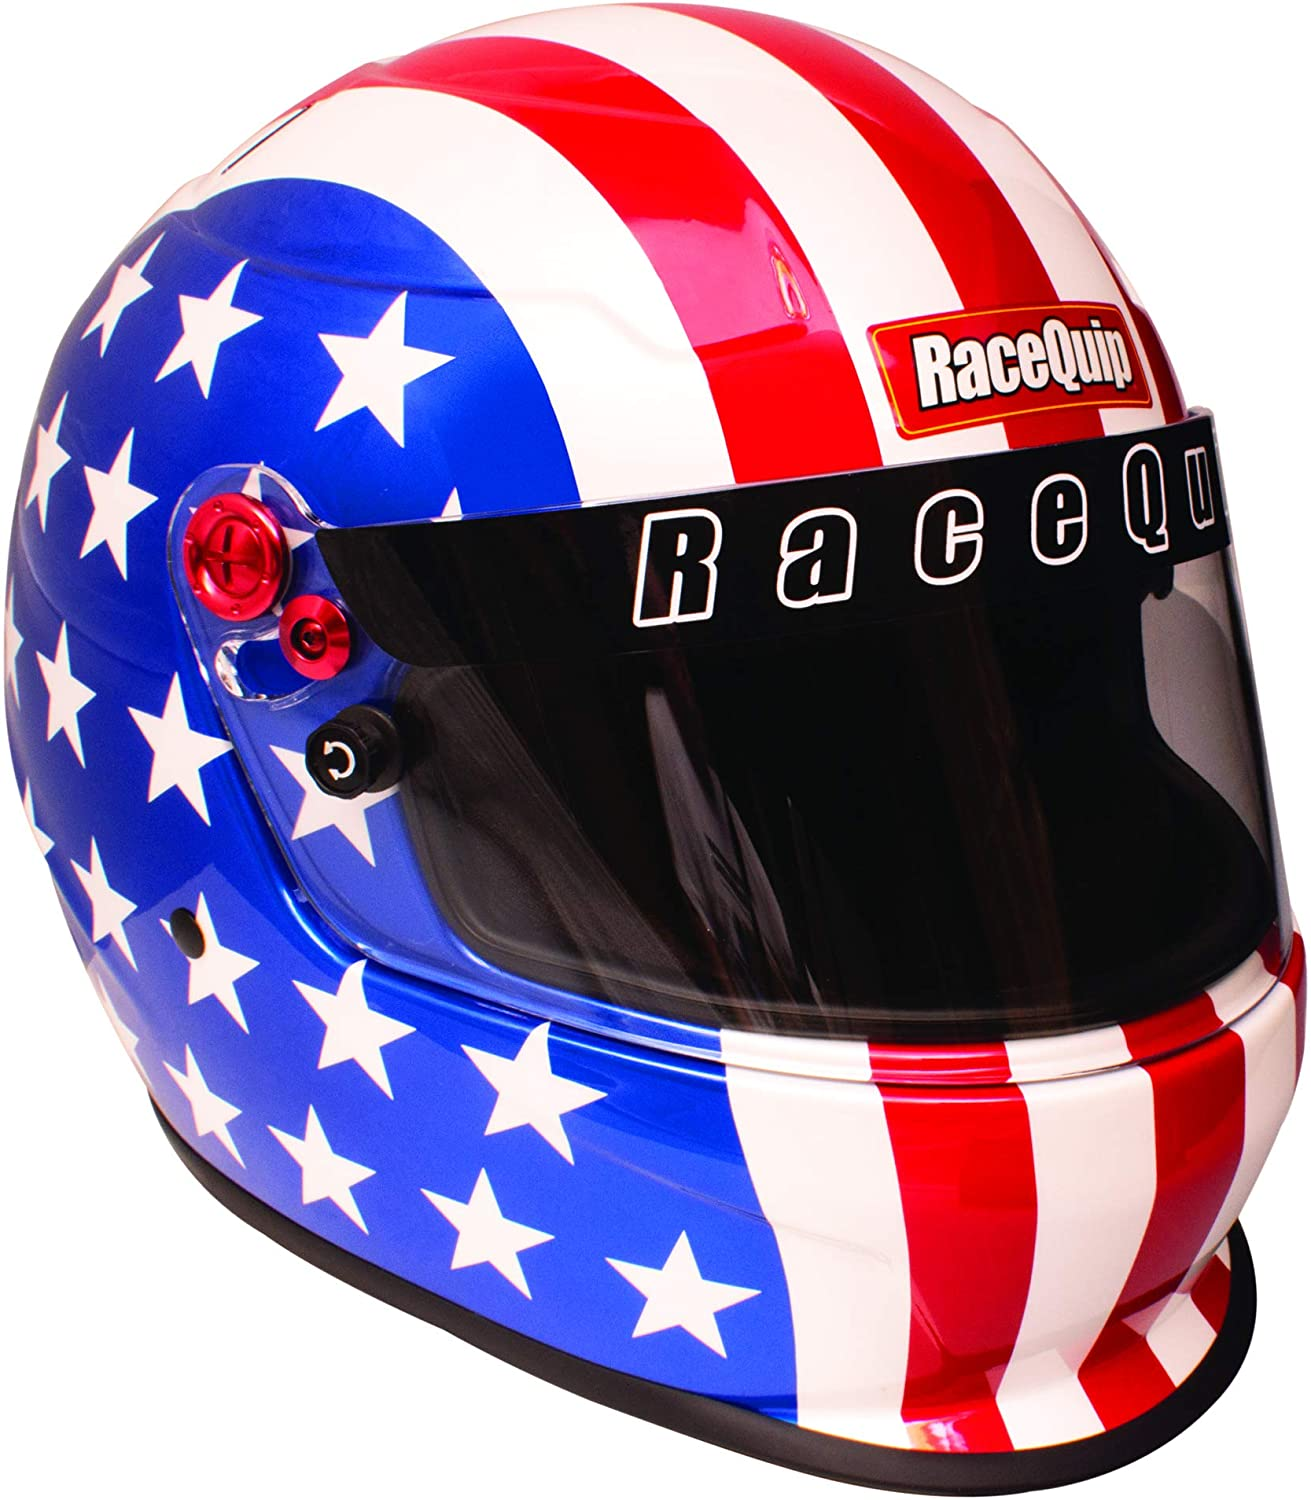 RaceQuip Full Face Helmet PRO20 Rated 2021 model SA2020 Snell Series Americ Max 65% OFF